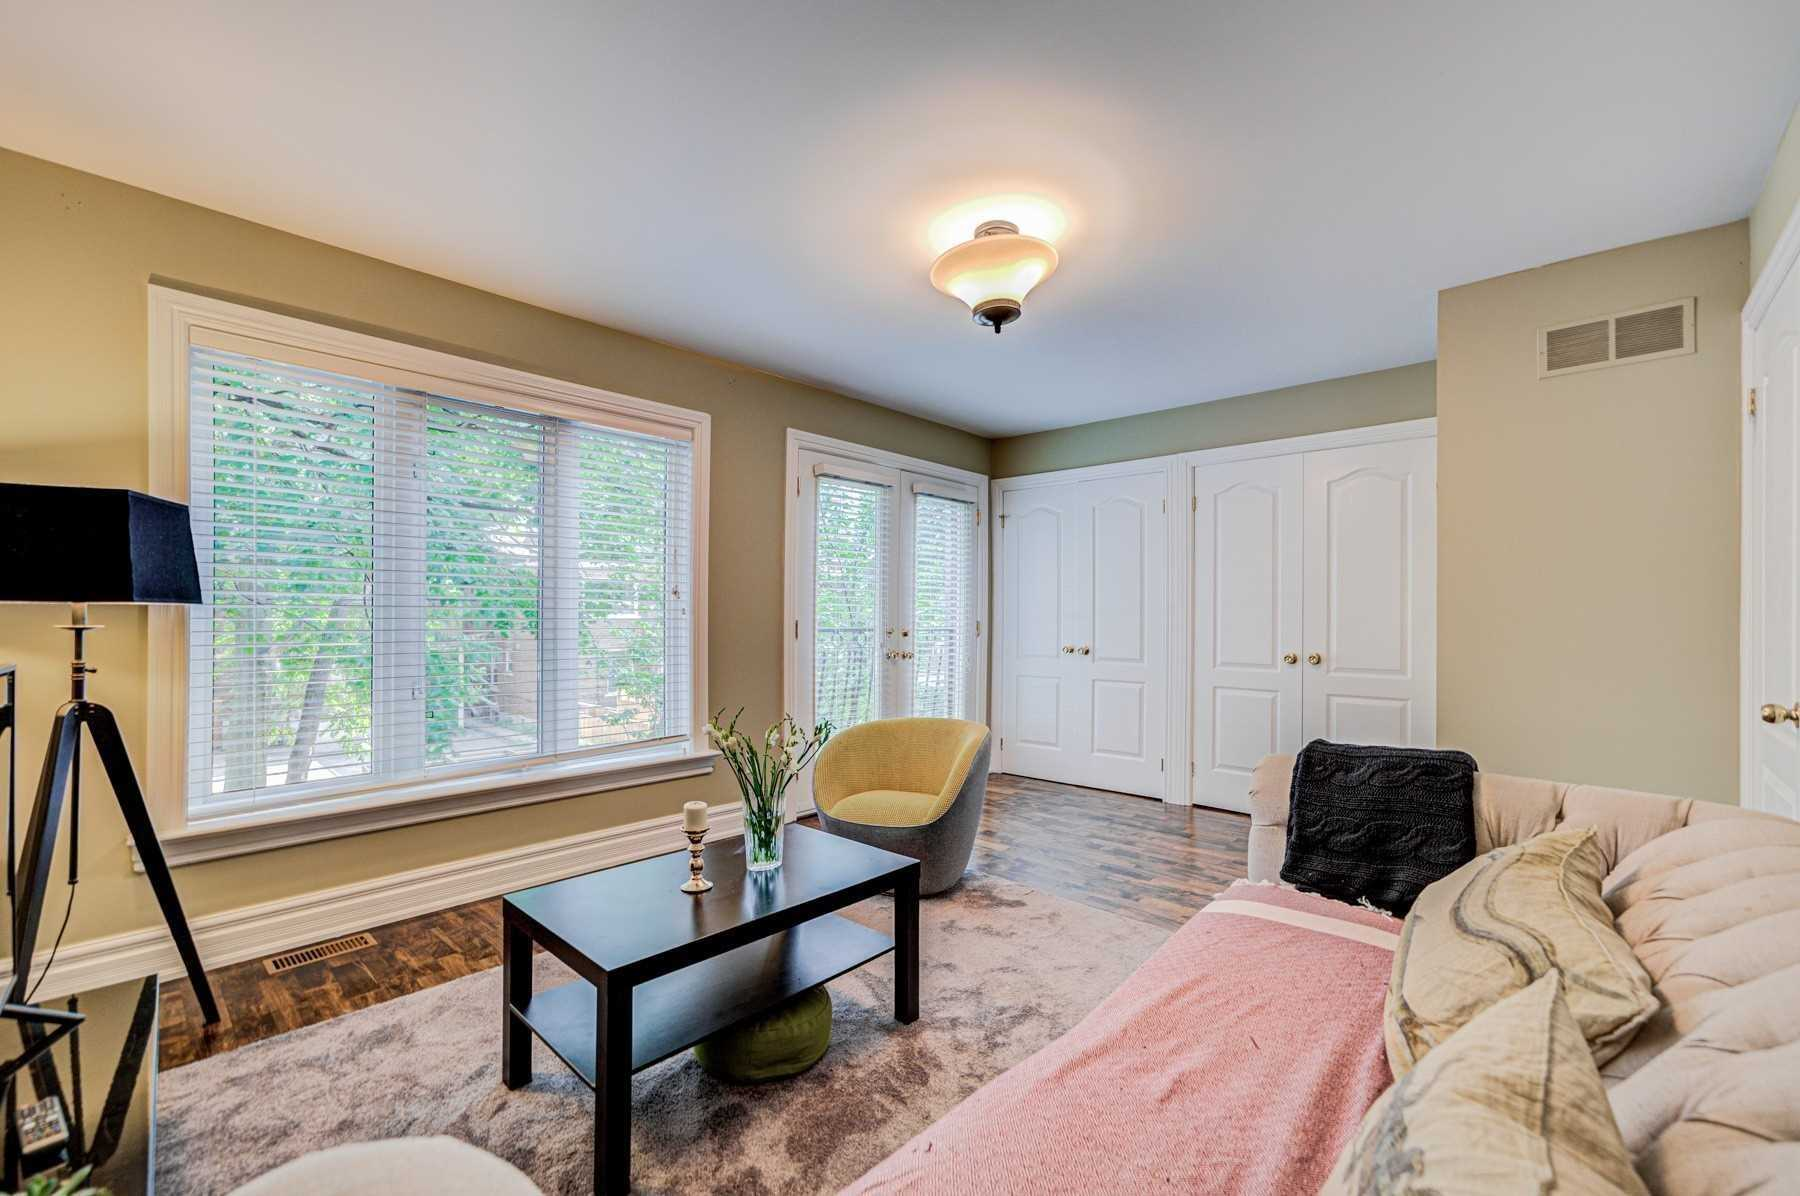 Detached house For Lease In Toronto - 33 Gloucester St, Toronto, Ontario, Canada M4Y1L8 , 4 Bedrooms Bedrooms, ,5 BathroomsBathrooms,Detached,For Lease,Gloucester